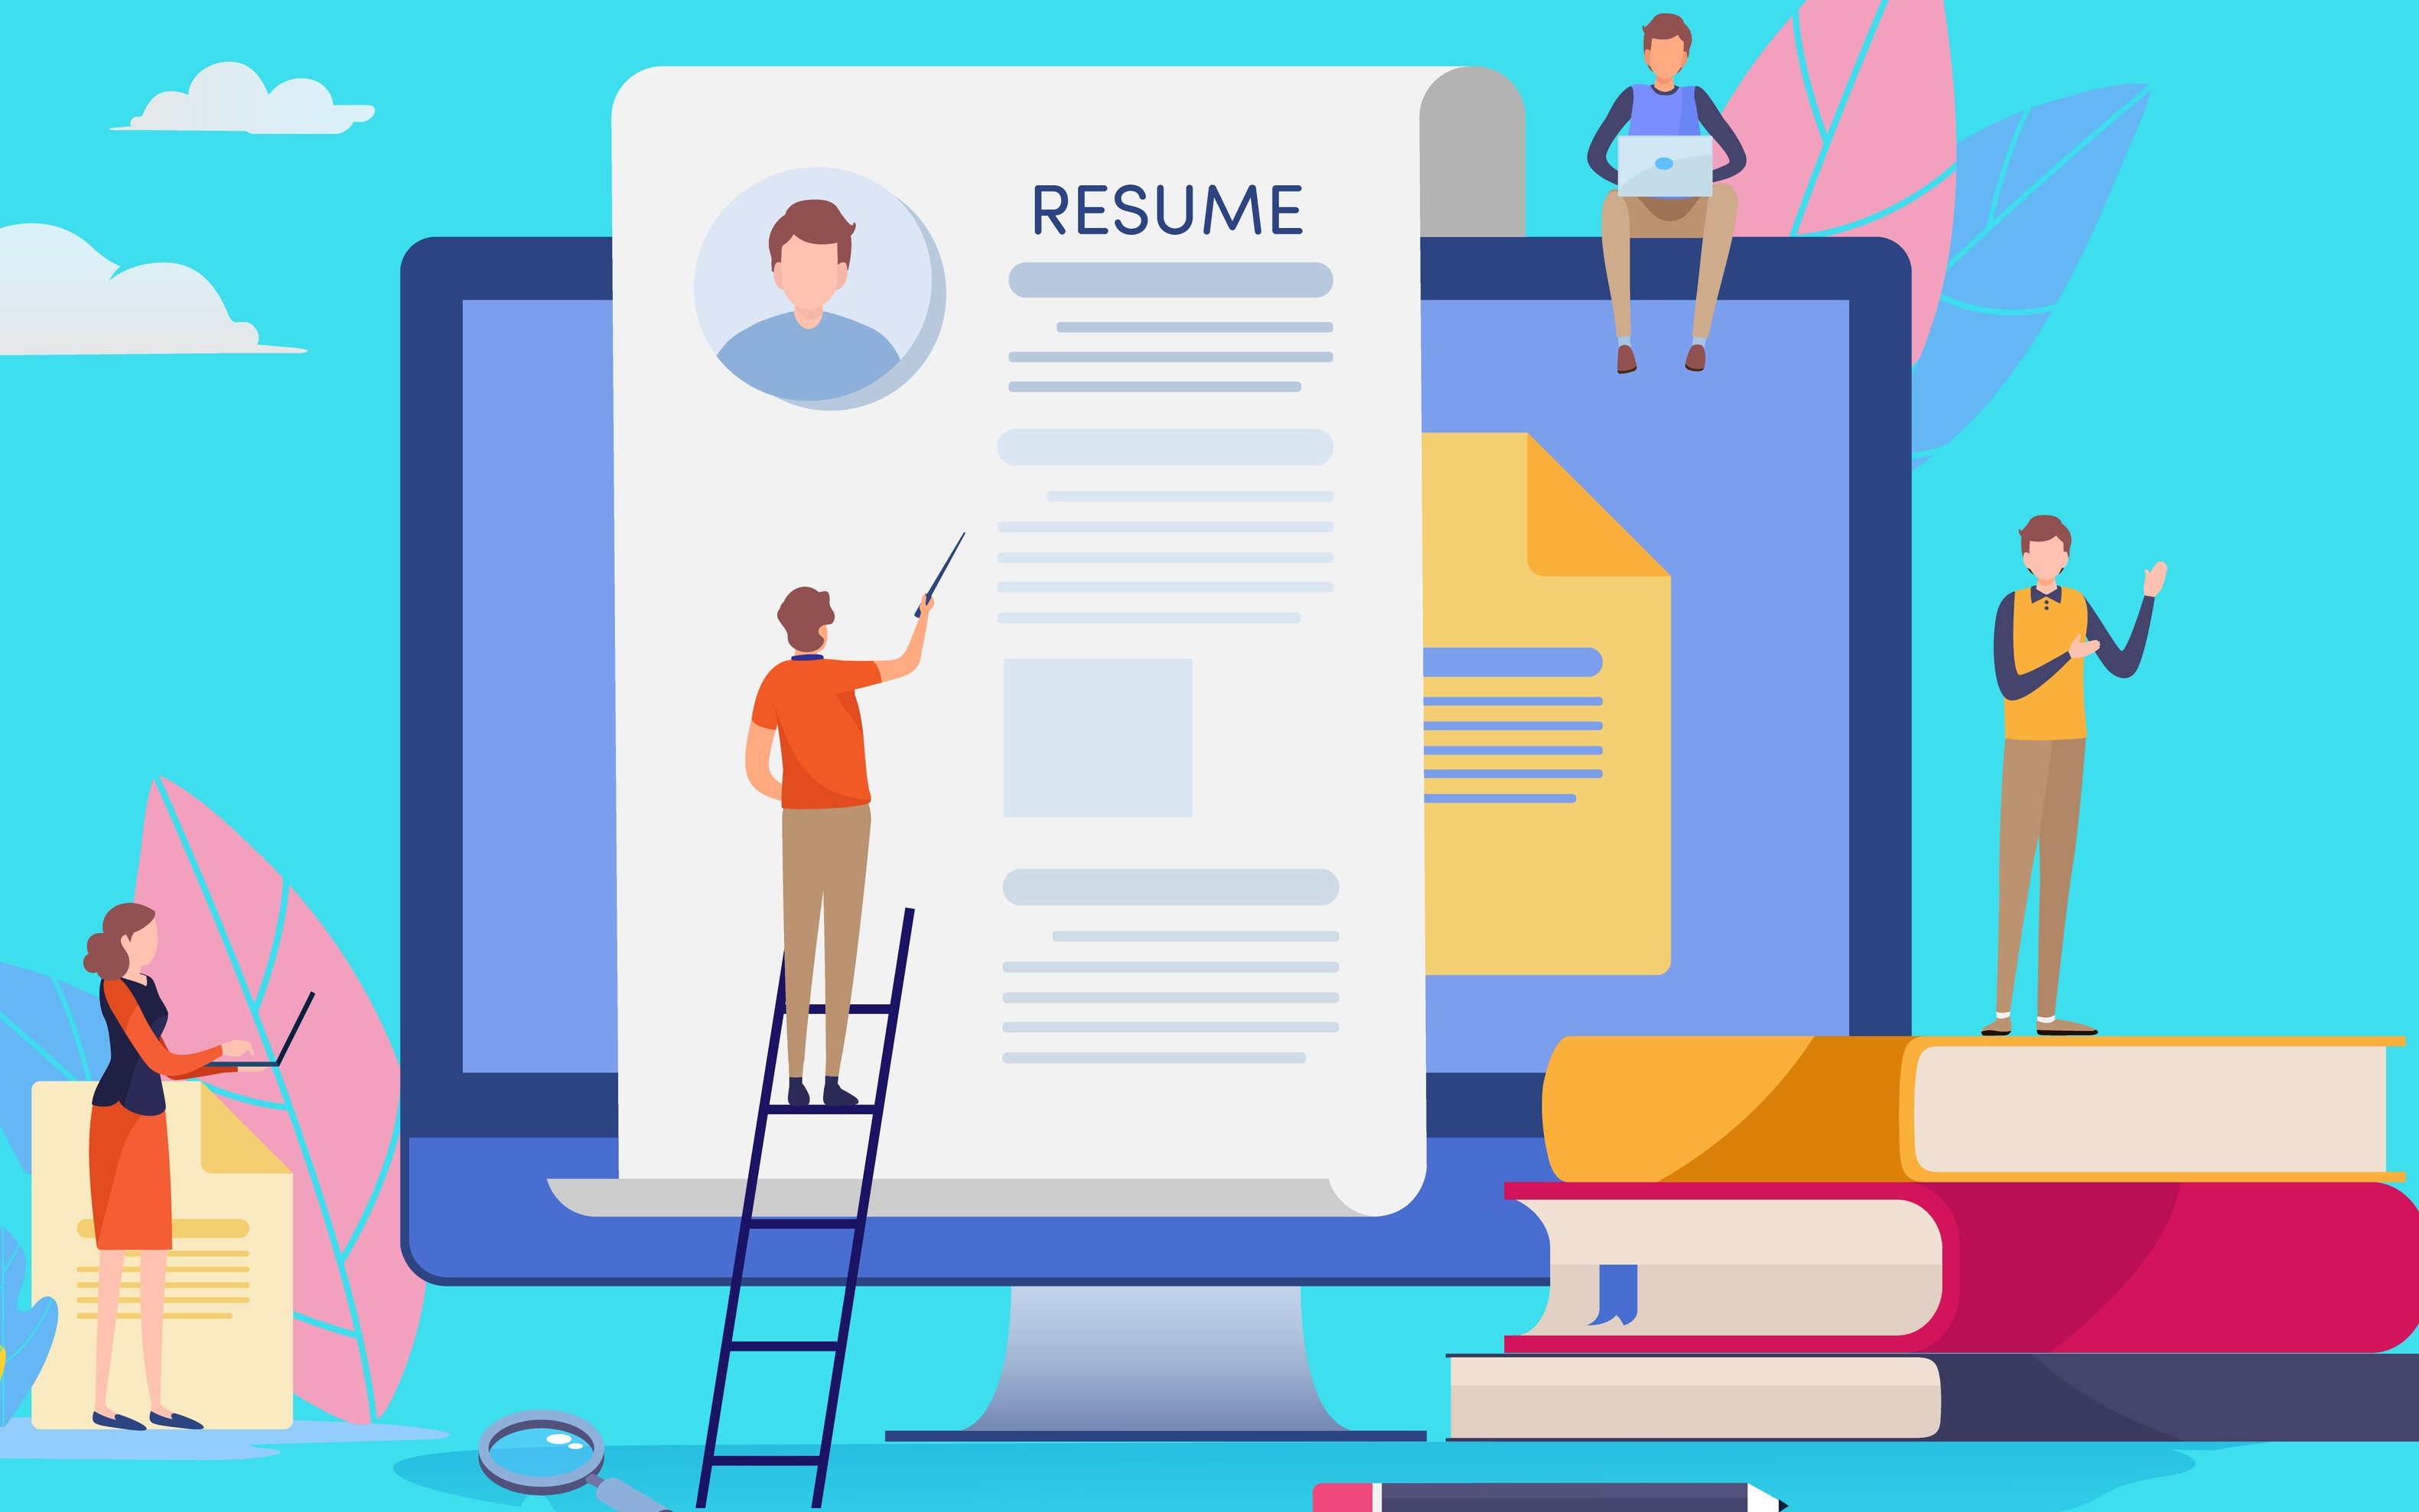 You best career starts with a Professional Resume